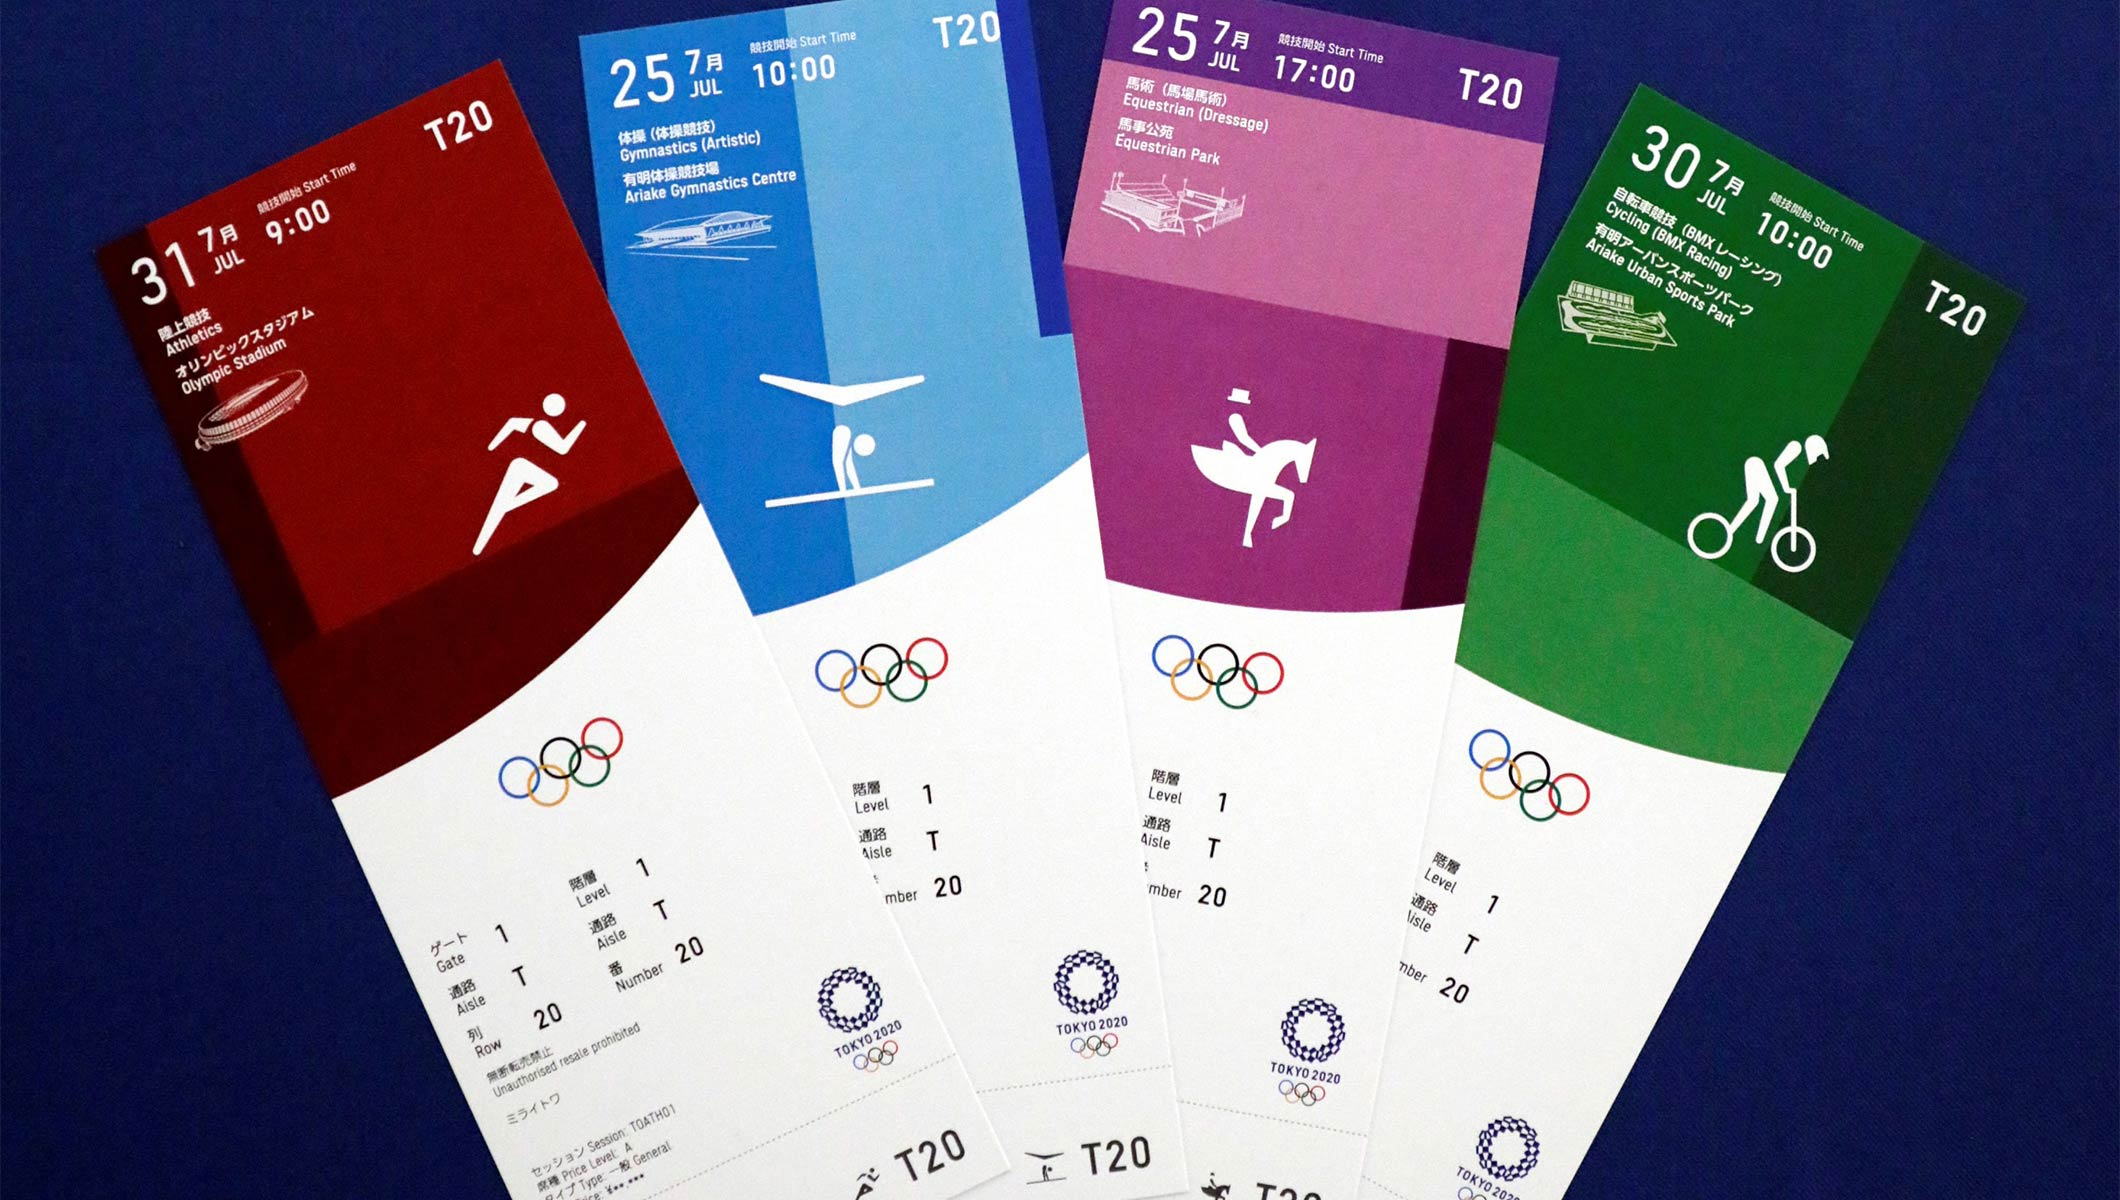 2020 Olympics Next Summer Olympic Games Tokyo 2020